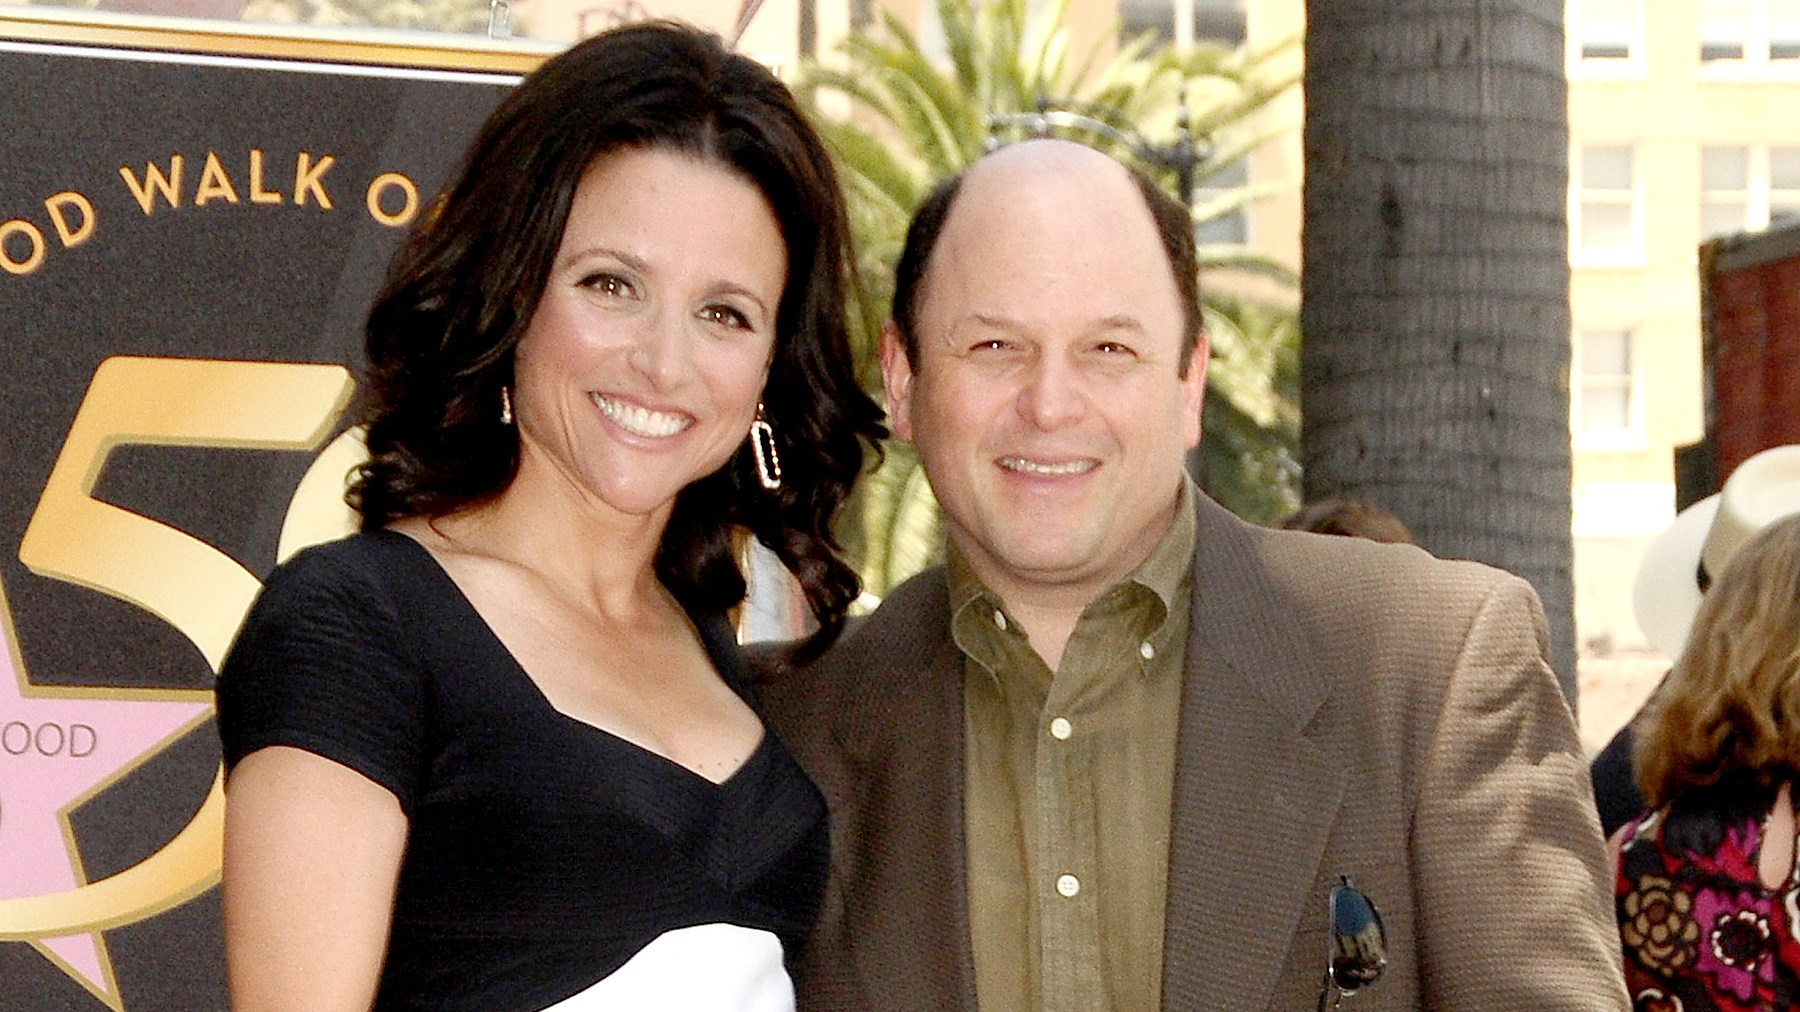 Julia Louis-Dreyfus and Jason Alexander attend Julia Louis-Dreyfus' induction into the Hollywood Walk of Fame on May 4, 2010 in Hollywood, California.